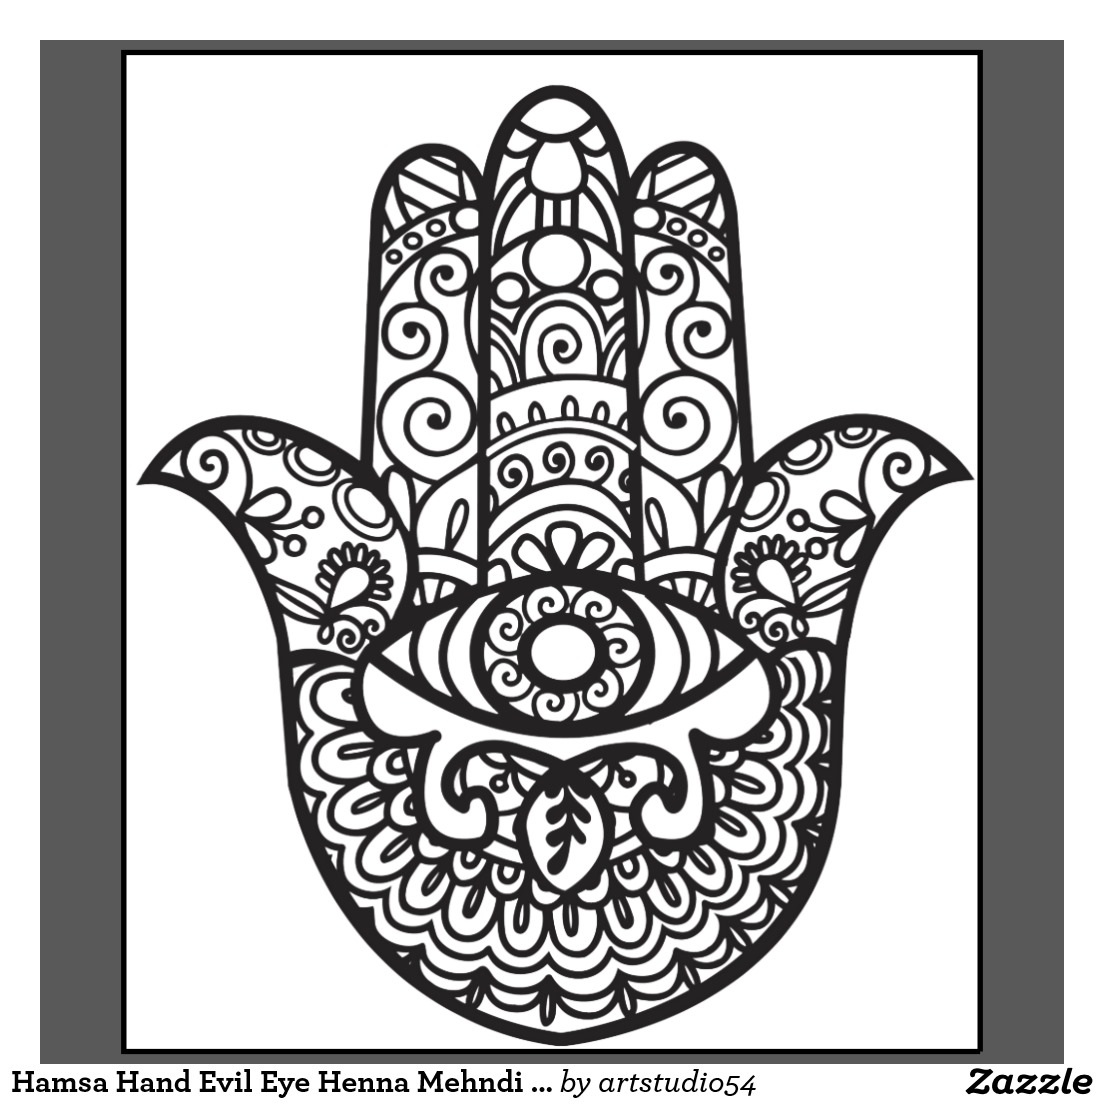 1104x1104 Hamsa Hand Evil Eye Henna Mehndi Style T Shirt Zazzle Tattoo